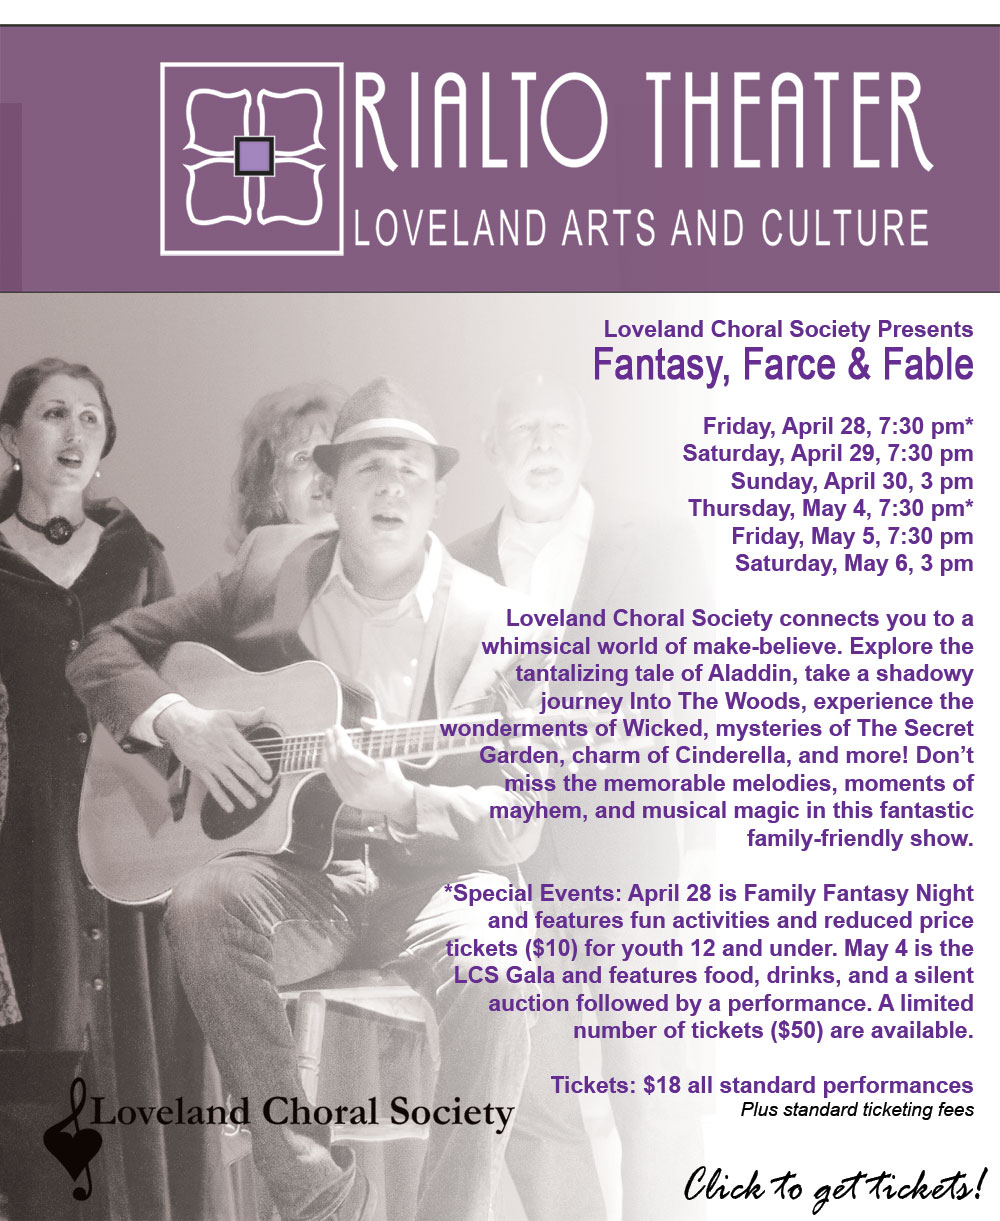 Loveland Choral Society presents Fantasy, Farce & Fable